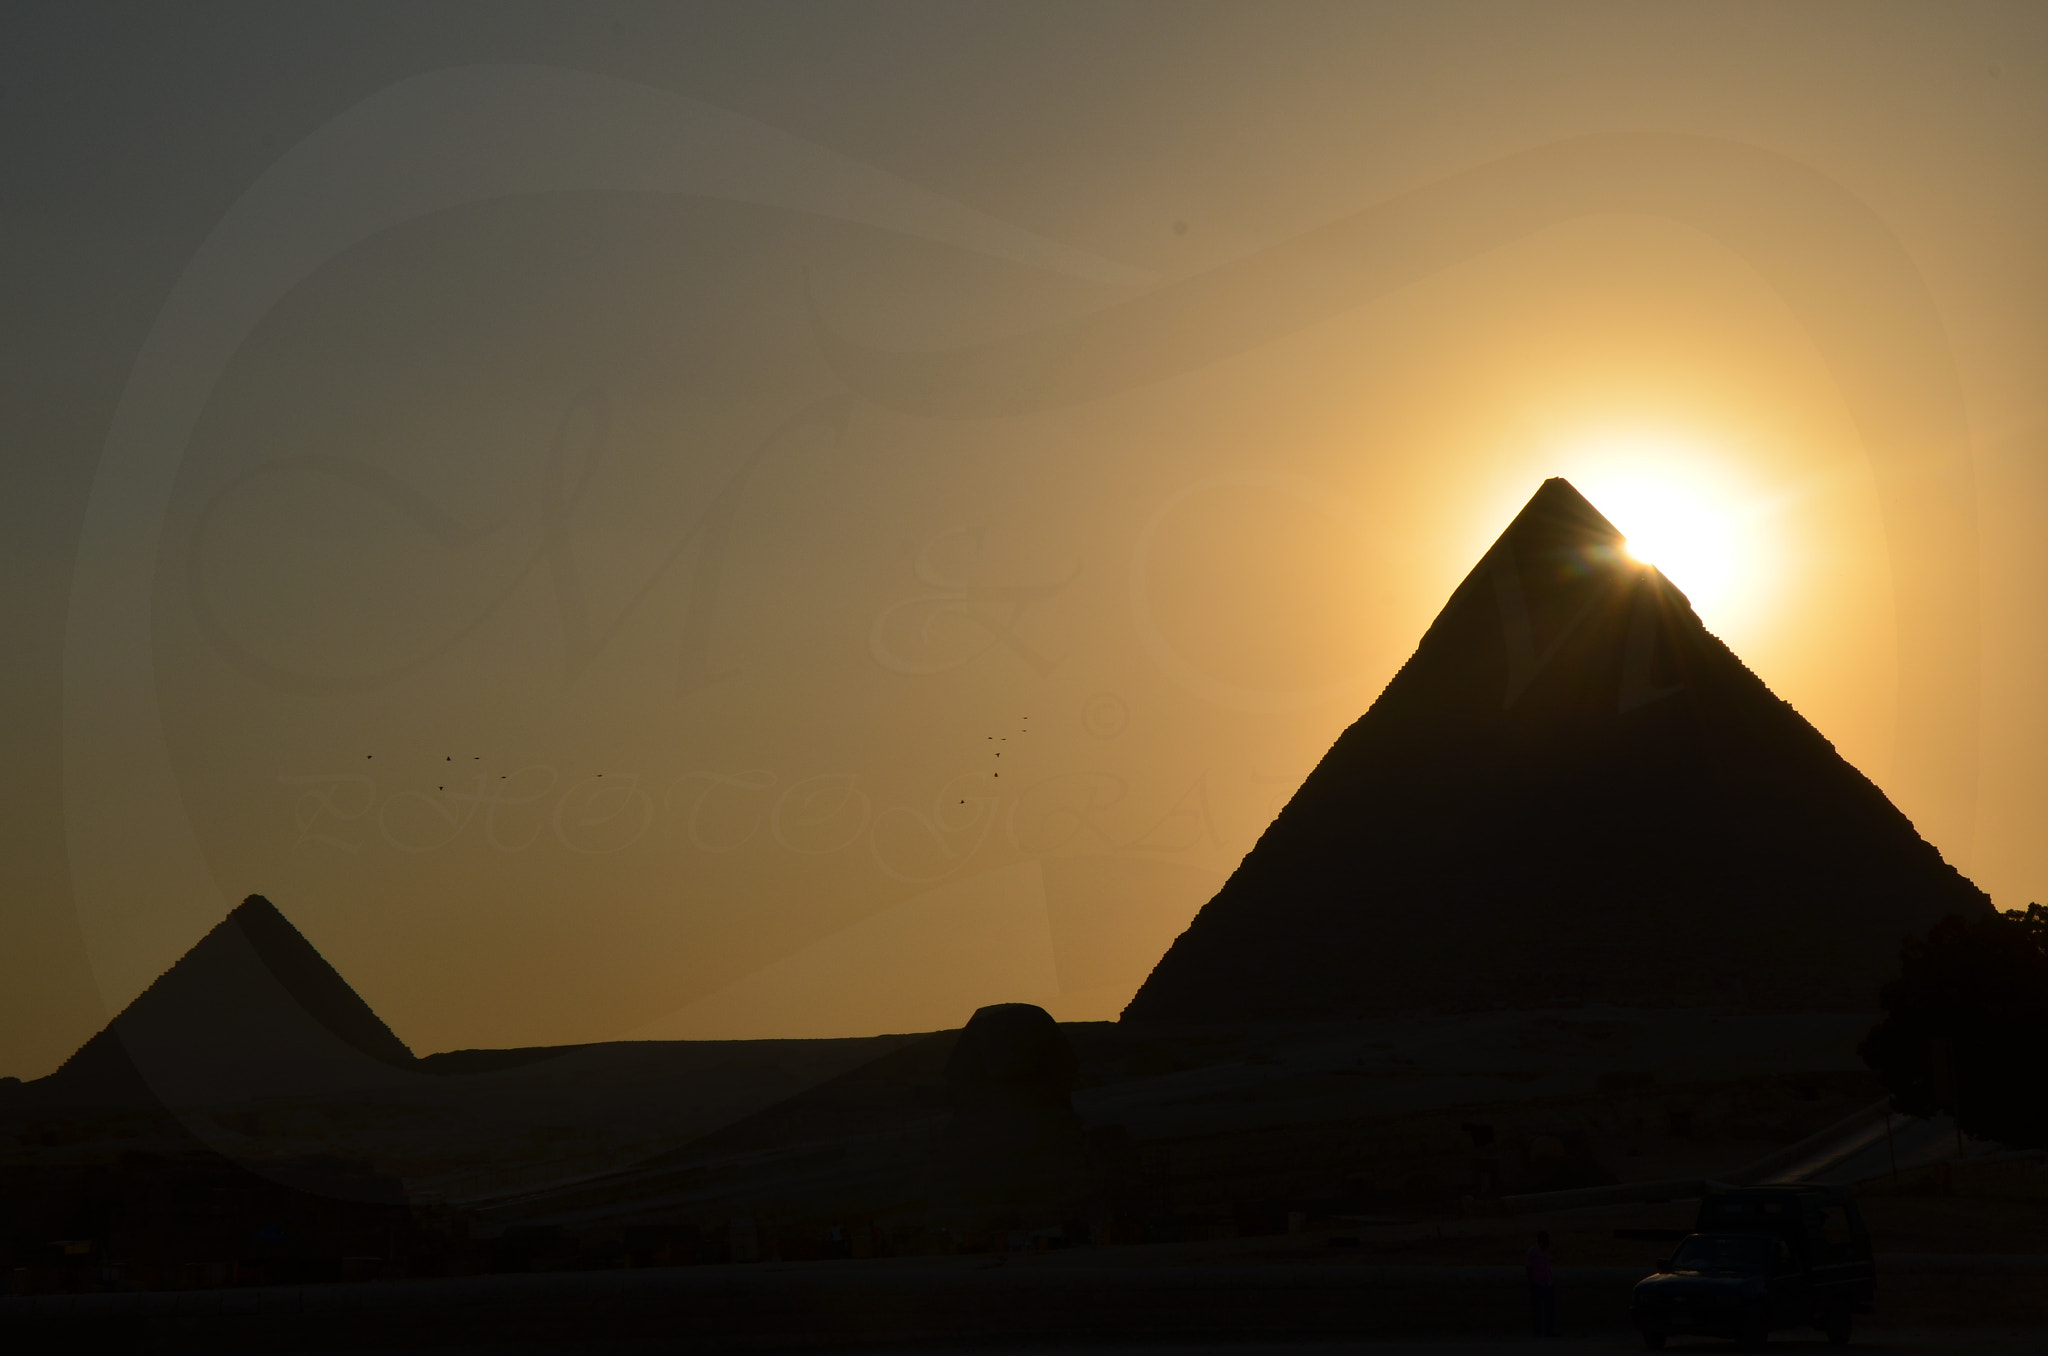 Photograph pyramids by Mohamed Raouf on 500px